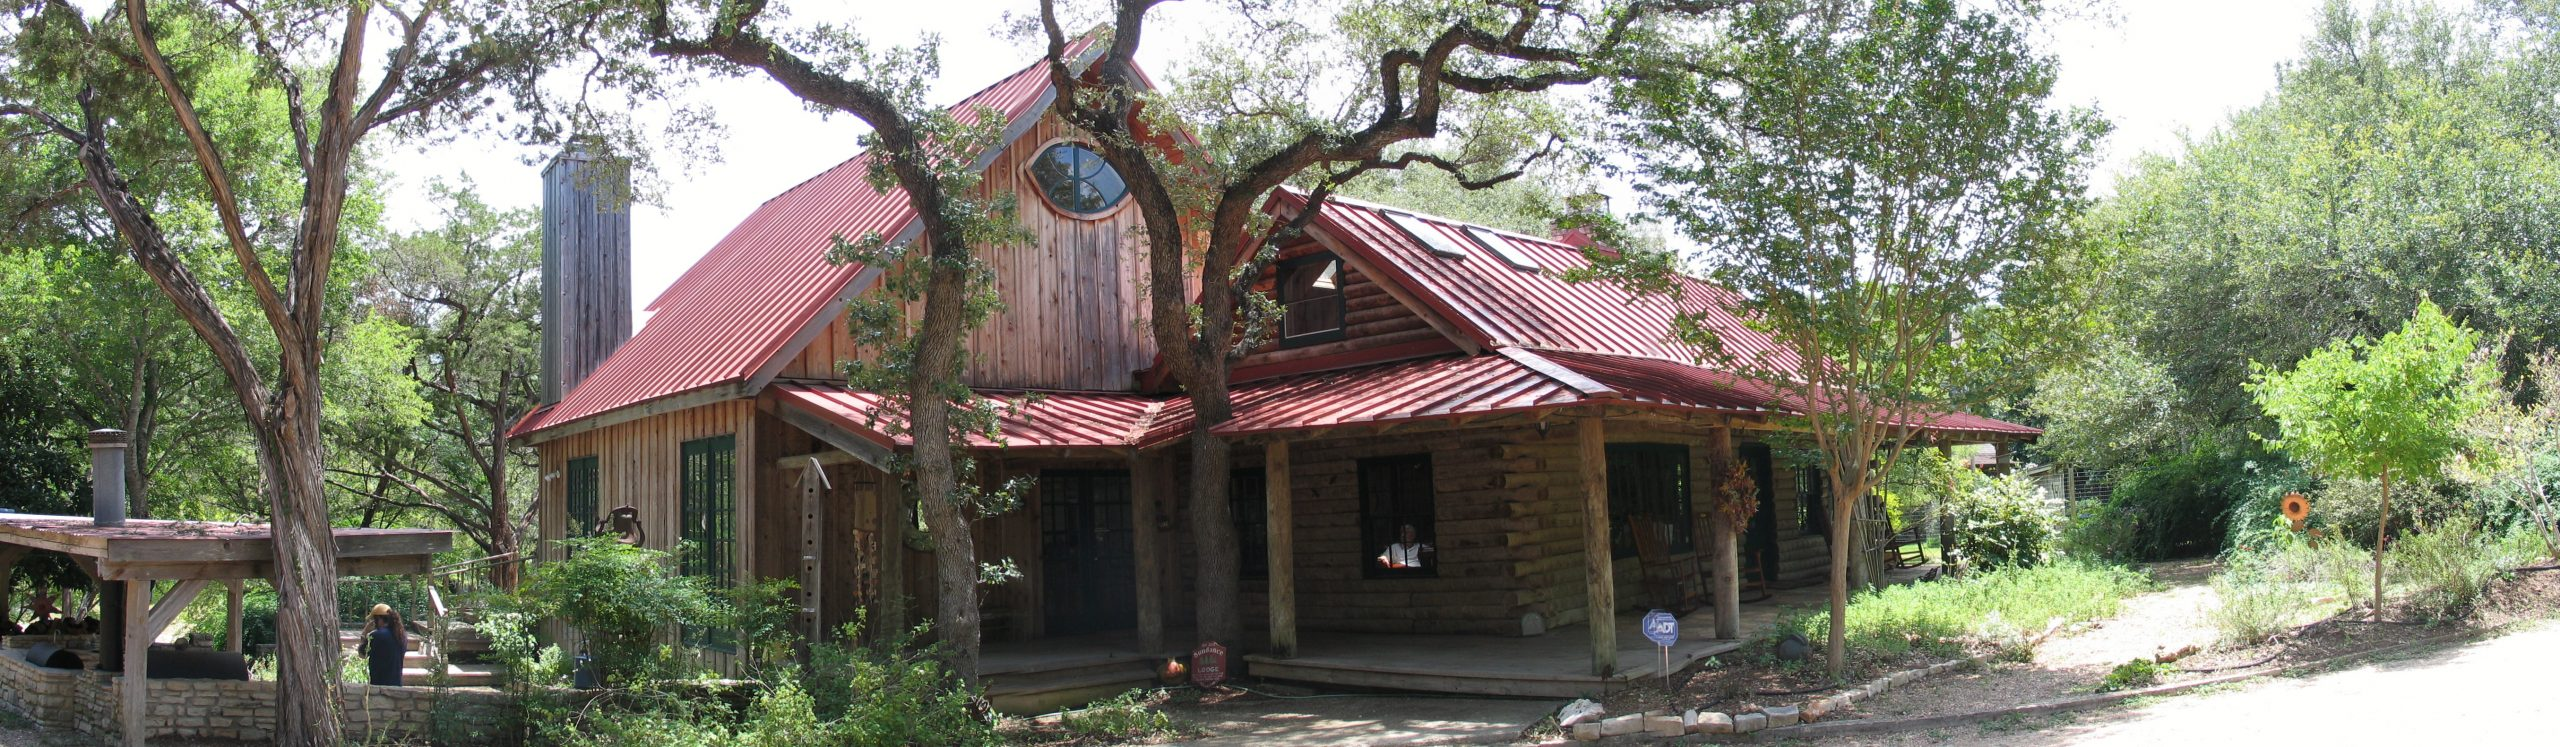 Special Rates For A Wimberley Hill Country Getaway!